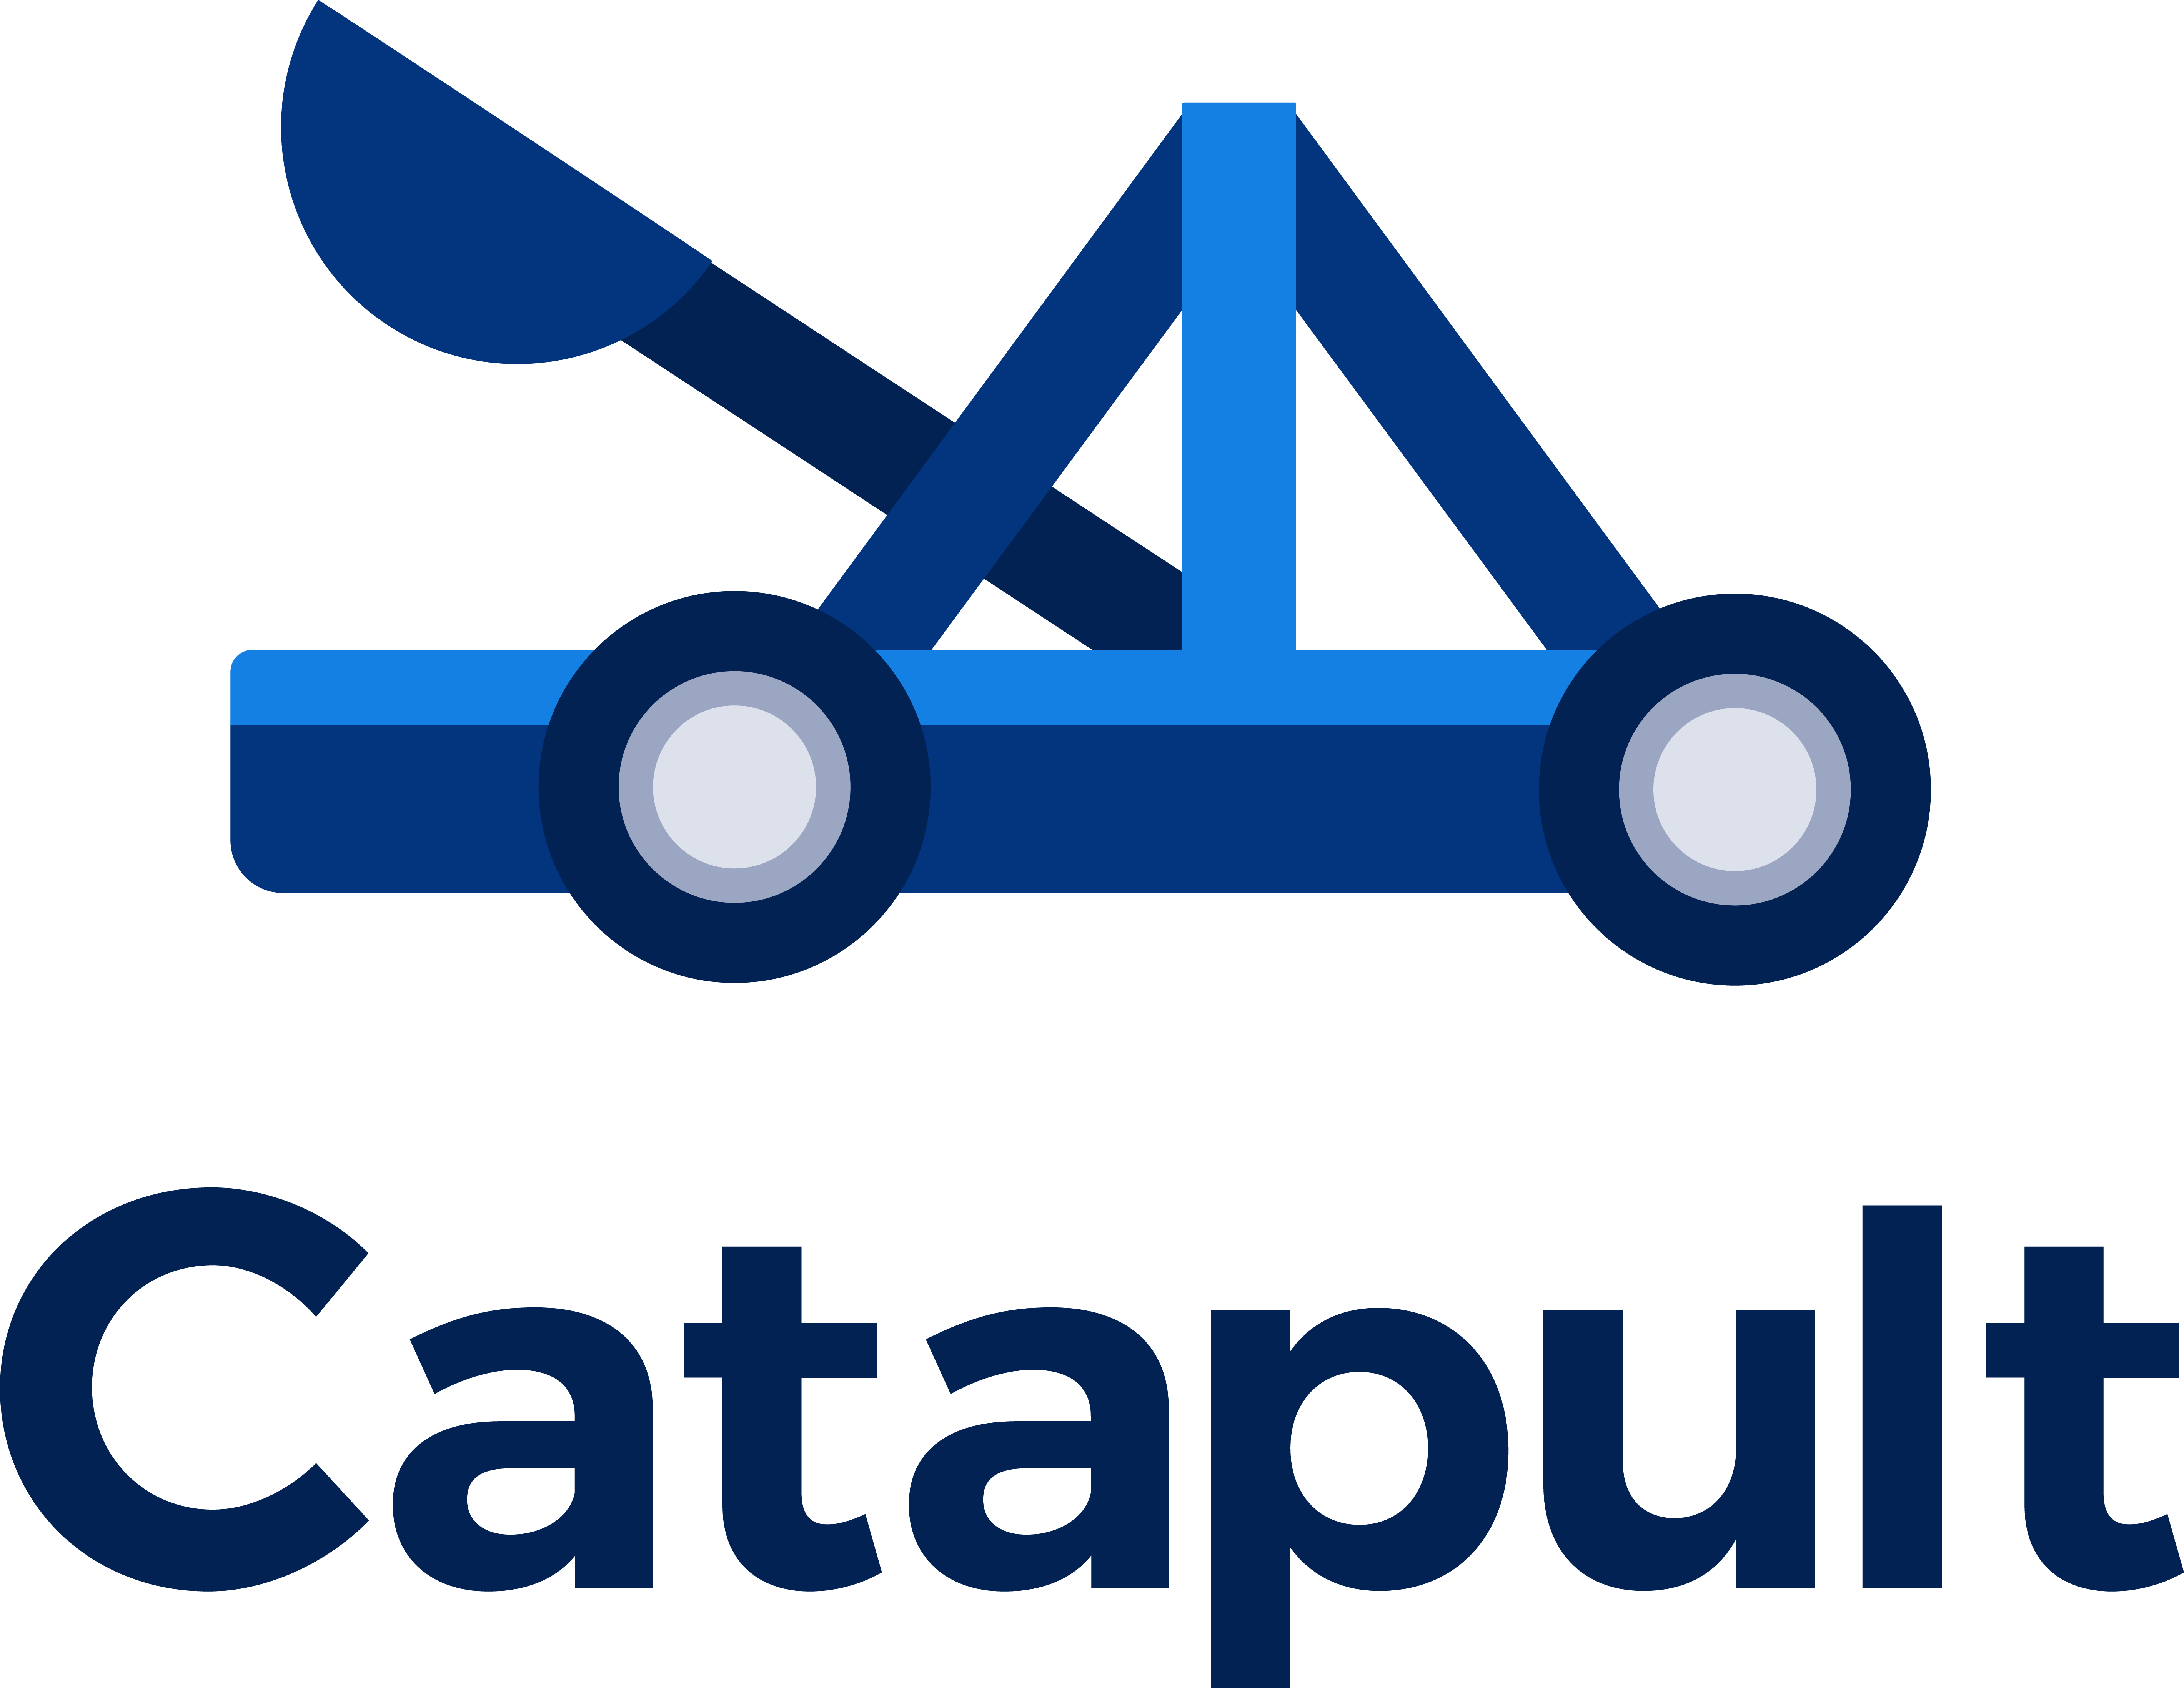 Catapult HQ, Inc.